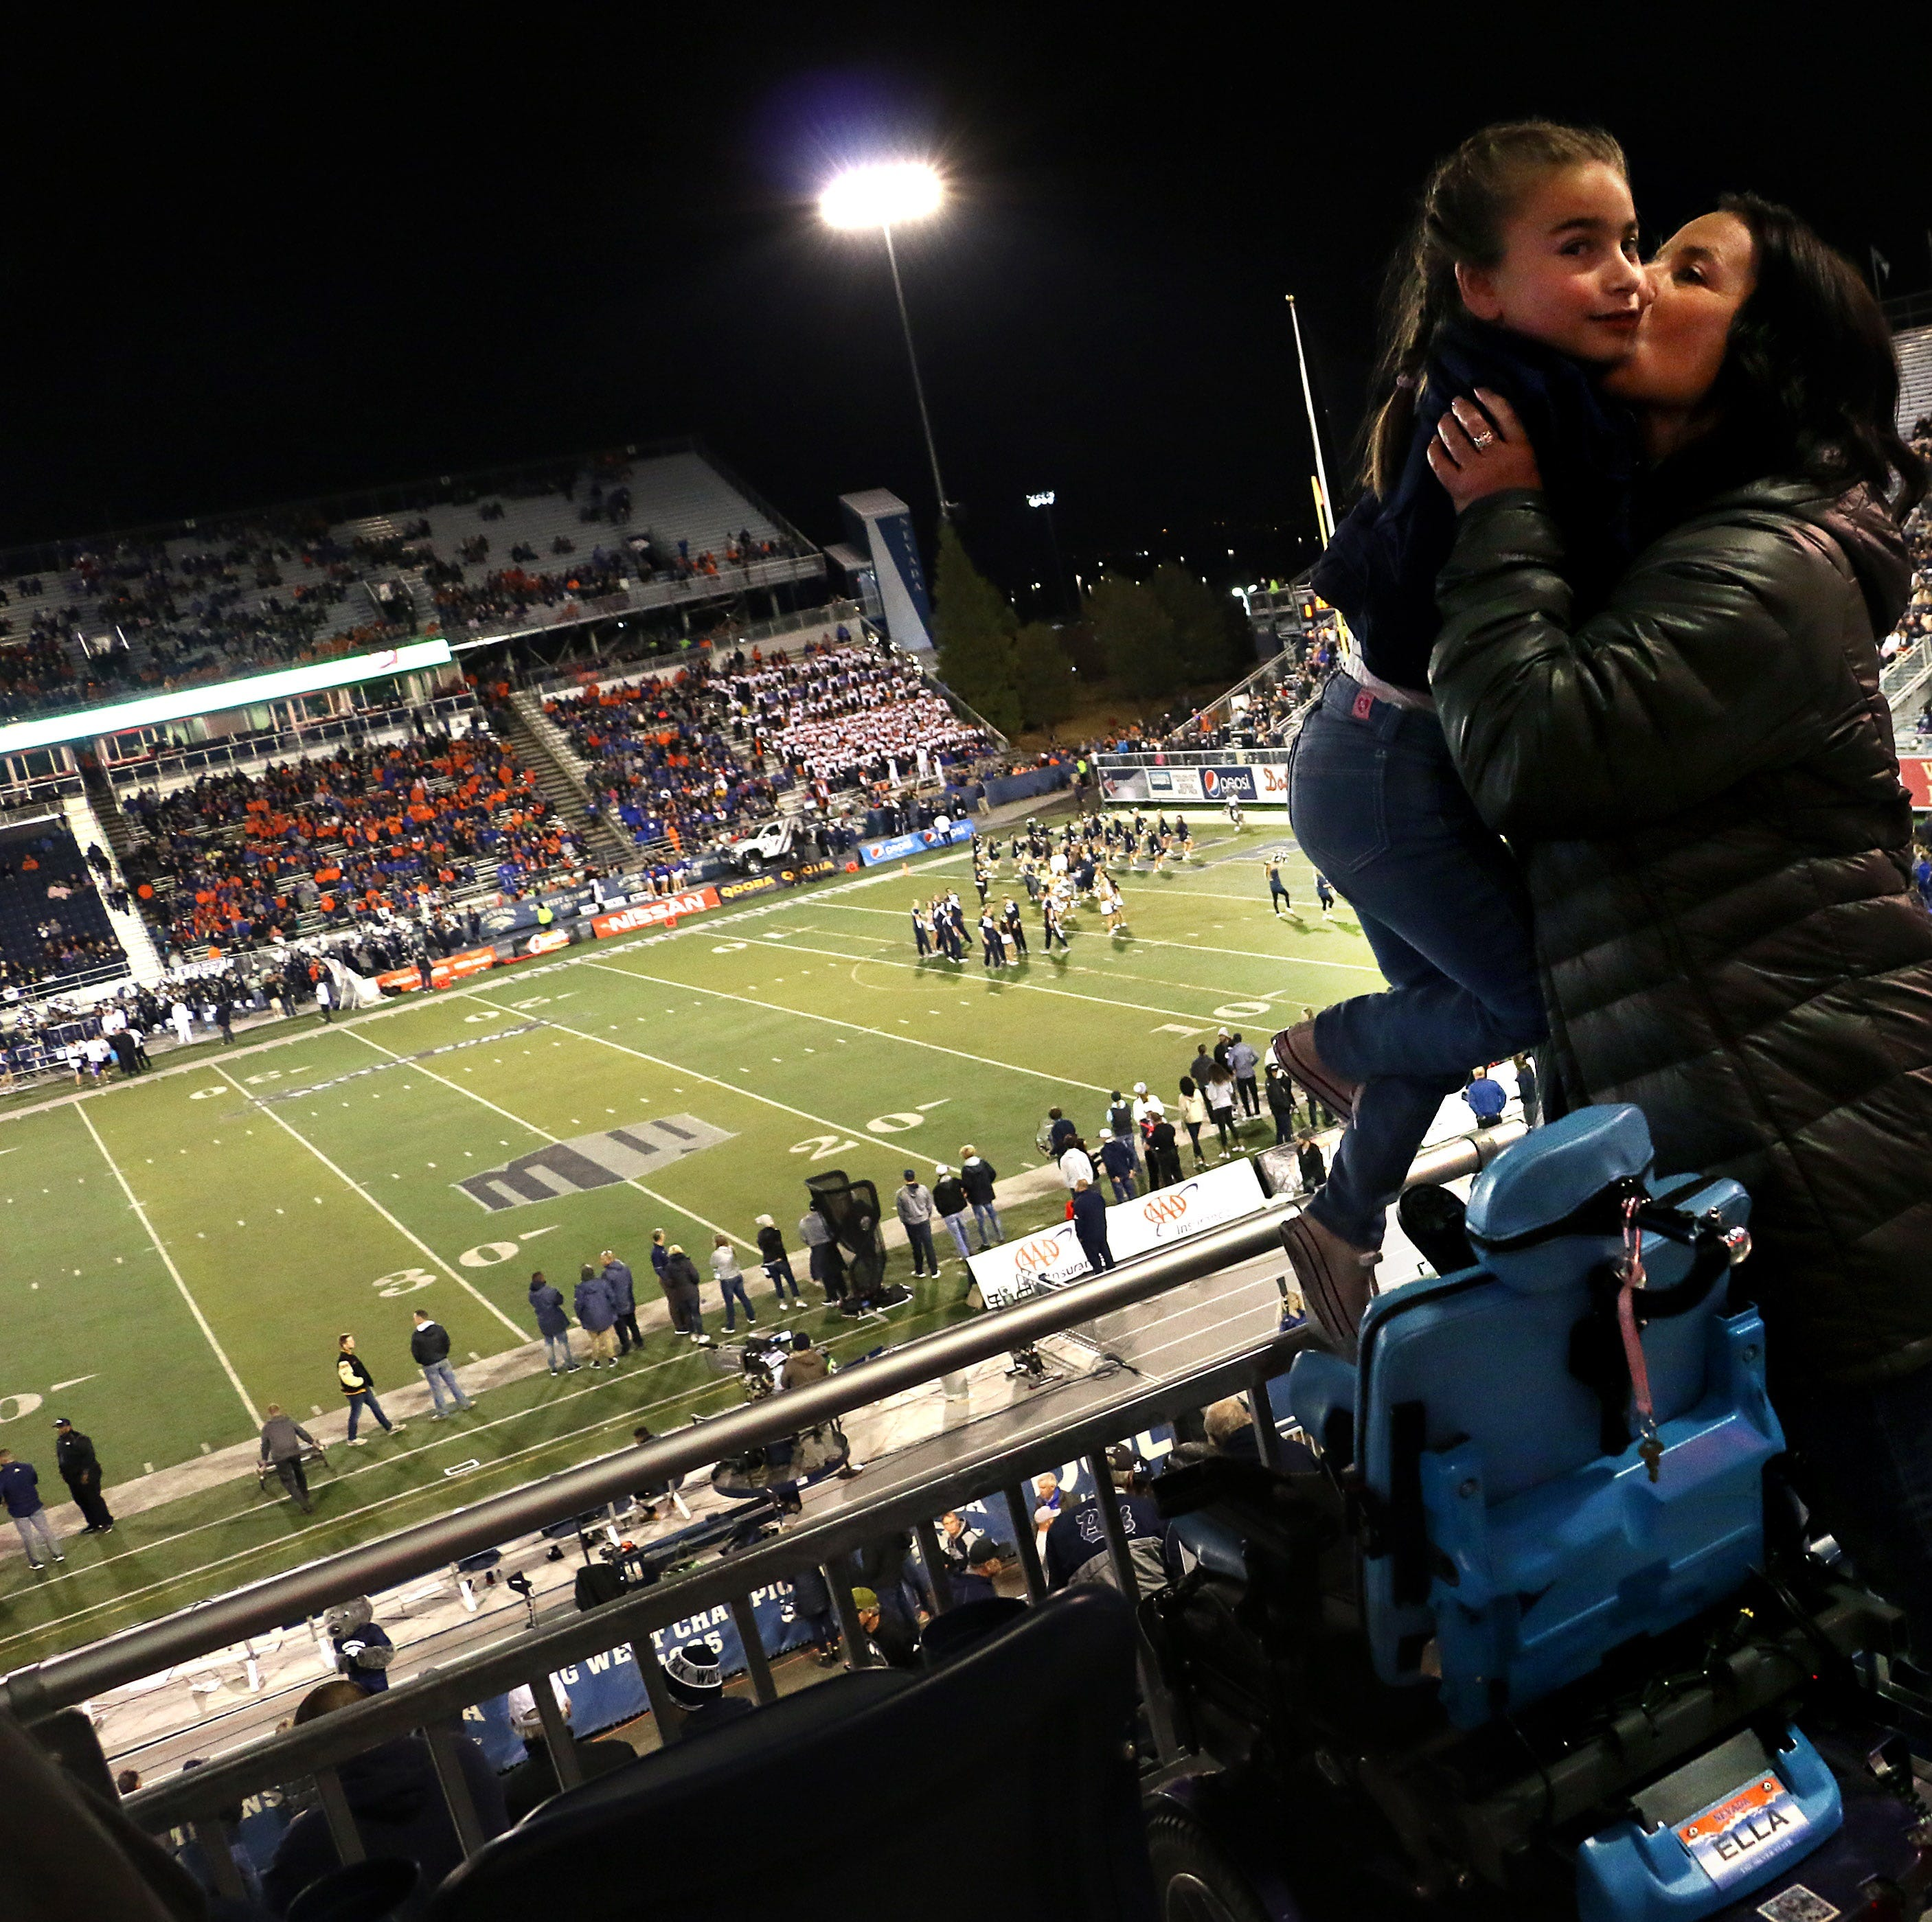 UNR will spend $2 million to fix ADA mistakes from its Mackay Stadium renovation